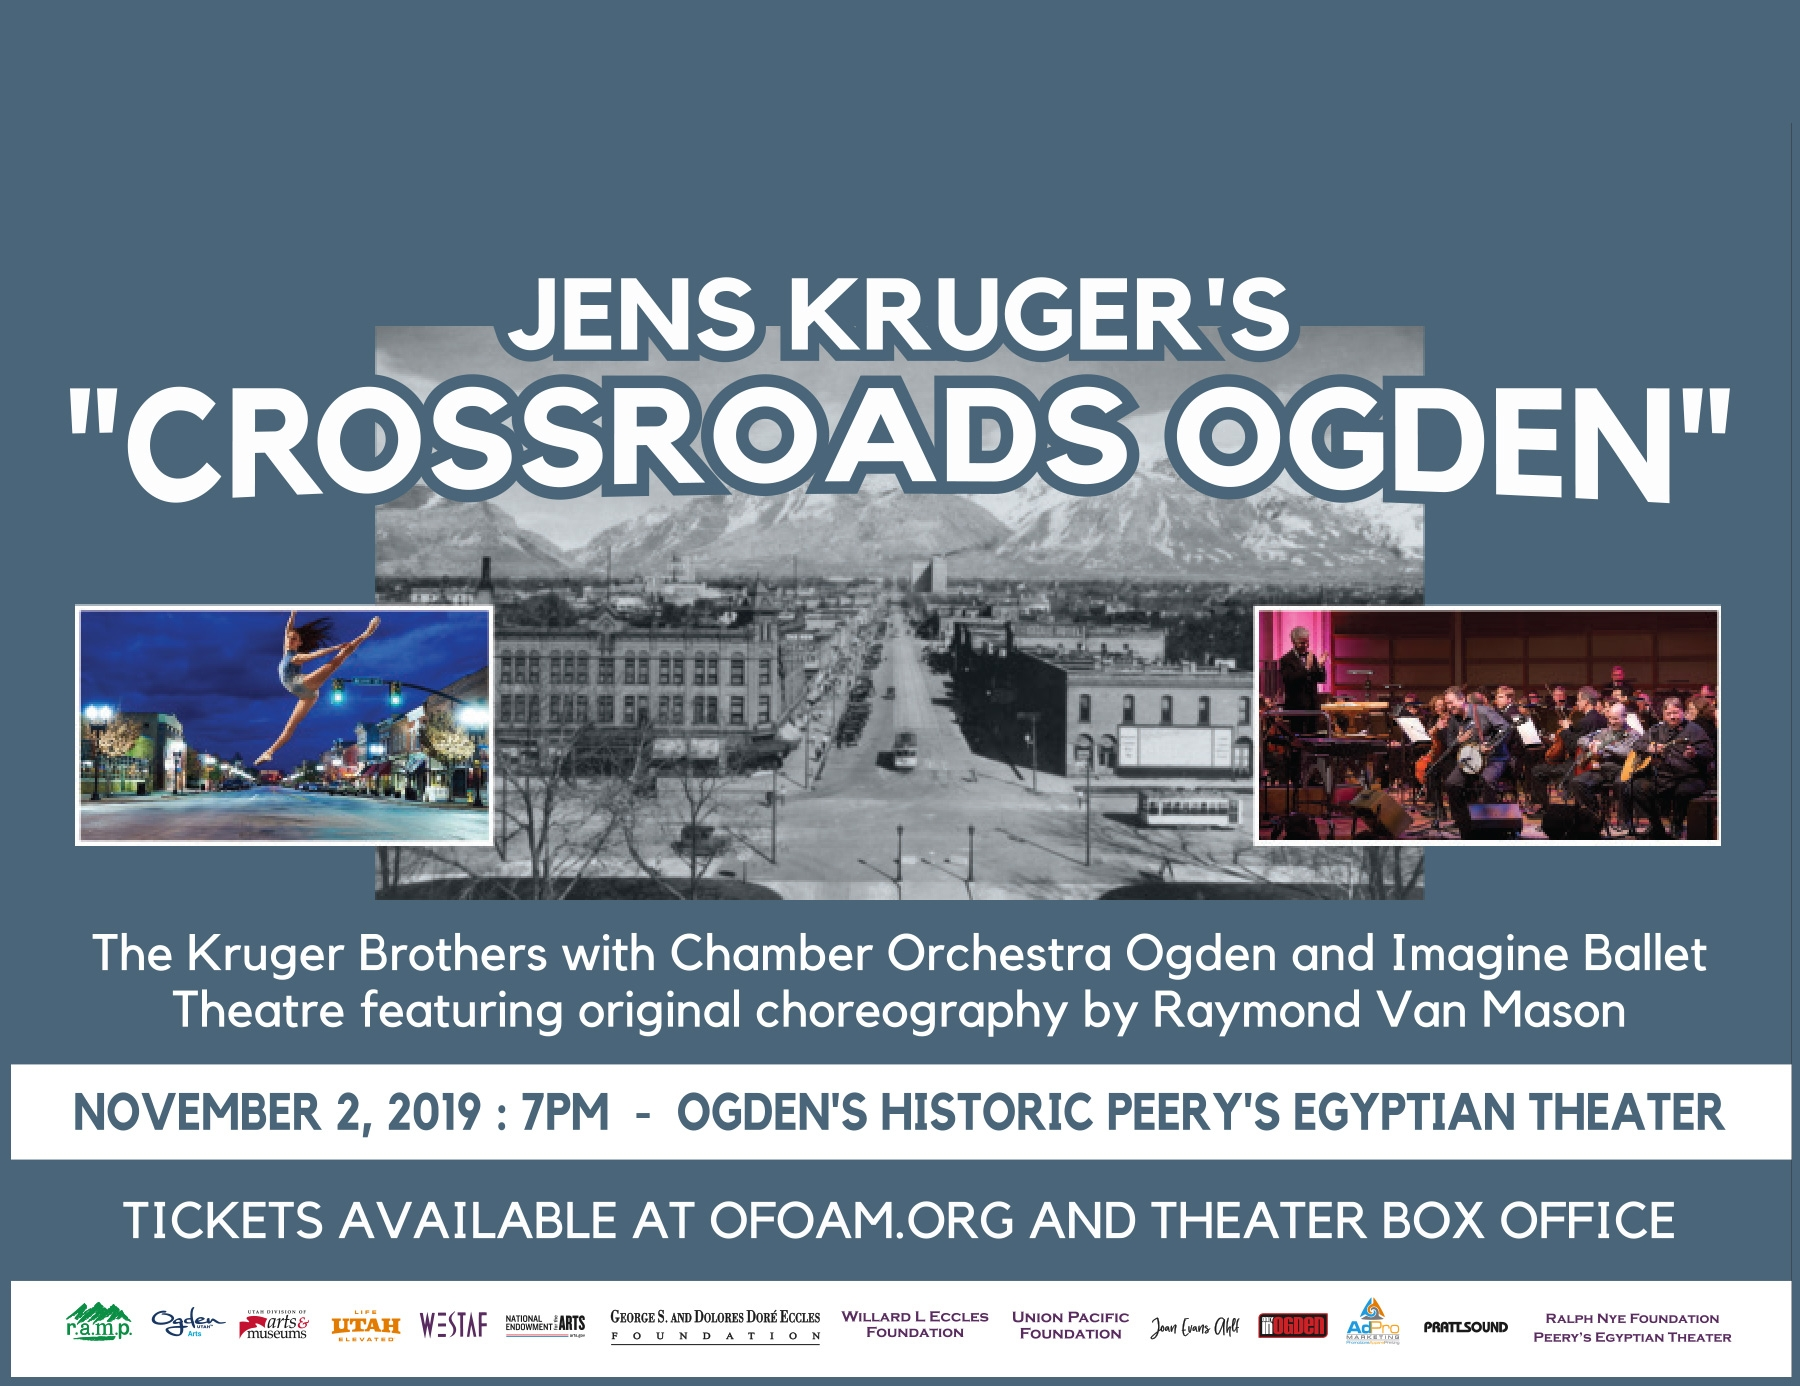 Crossroads Ogden, World Premiere at Ogden's Historic Peery's Egyptian Theater - November 2, 2019, 7:00 PM